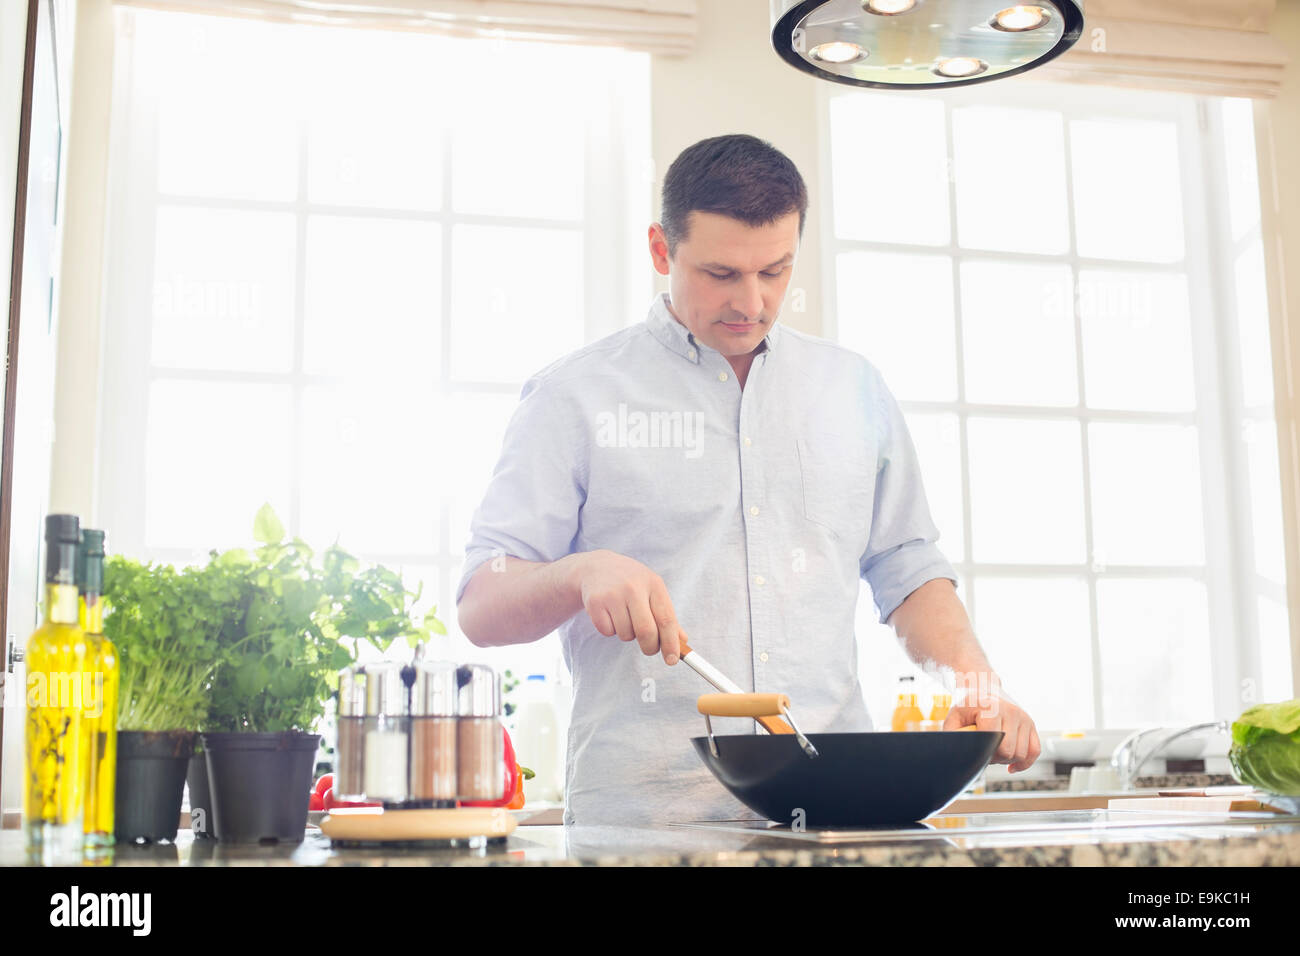 Middle-aged man preparing food in kitchen - Stock Image